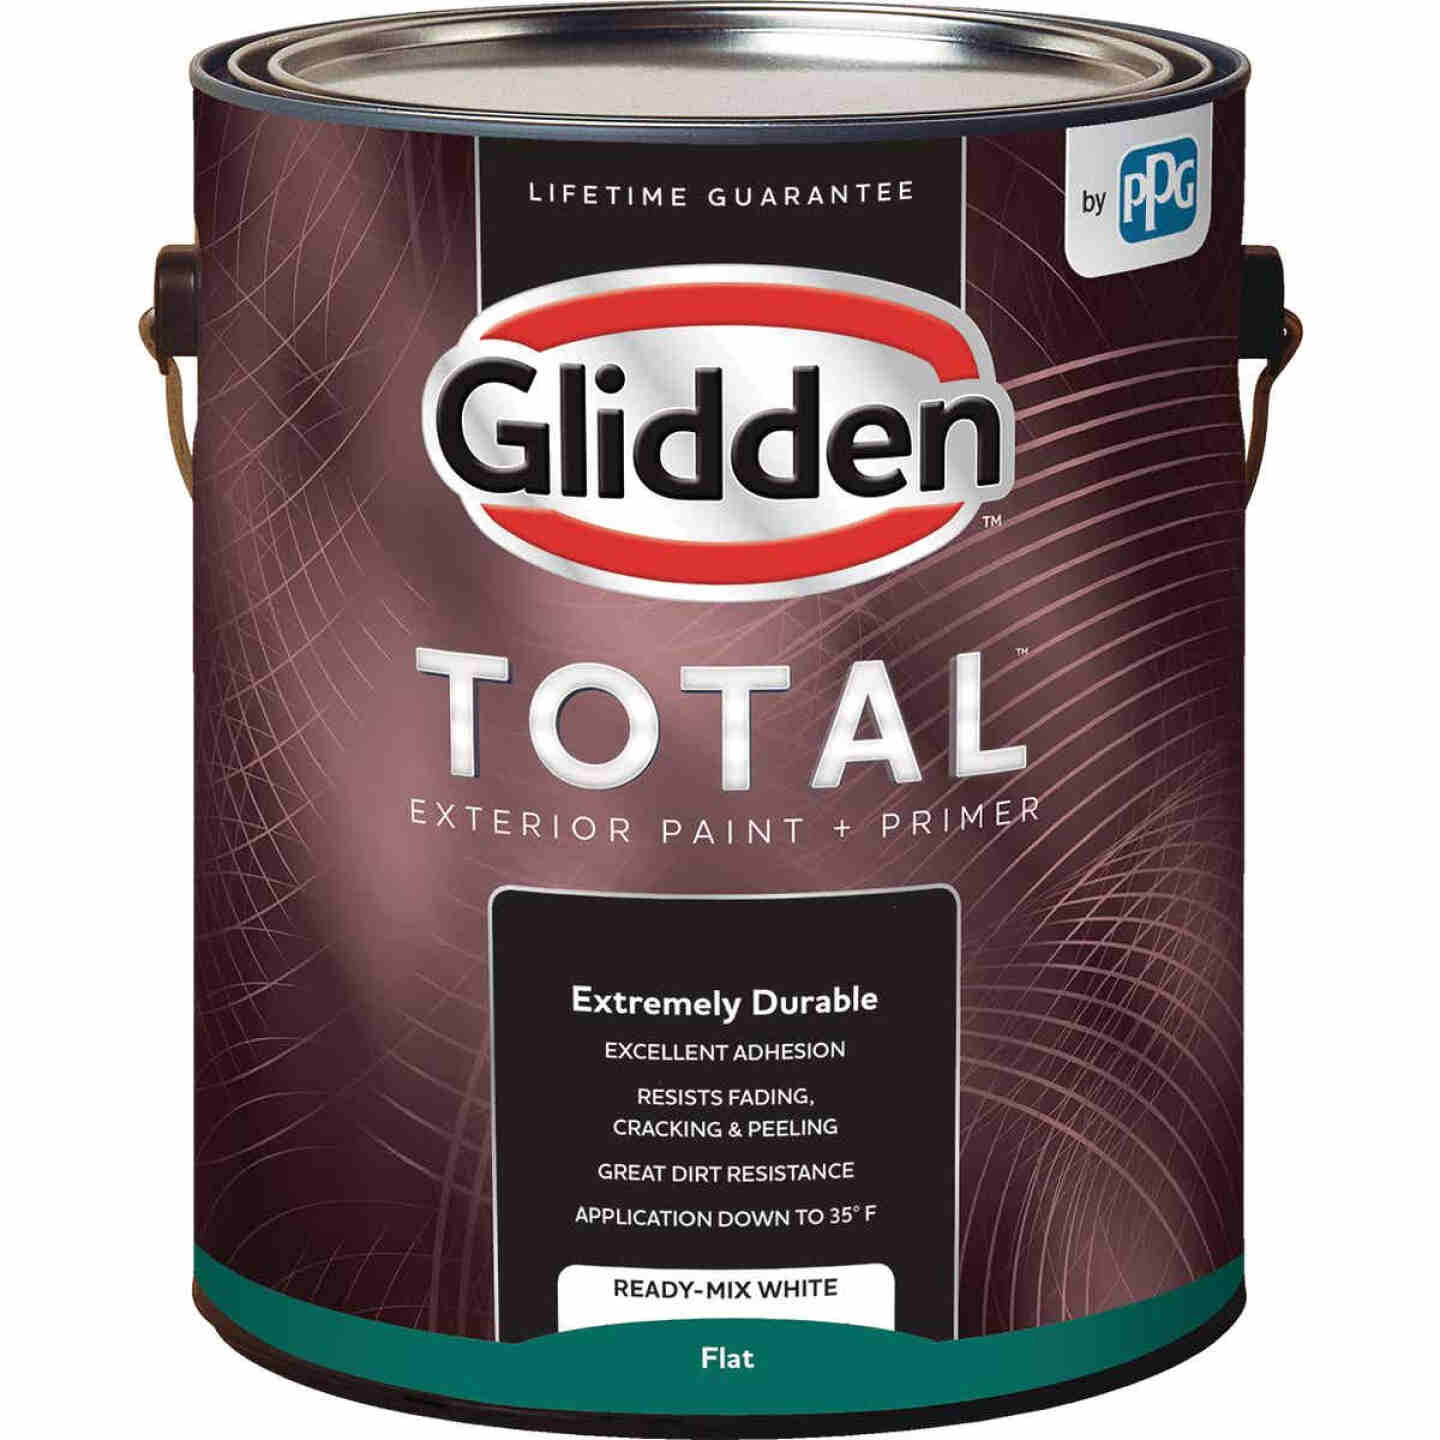 Glidden Total Exterior Paint + Primer Flat Ready Mix White 1 Gallon Image 1